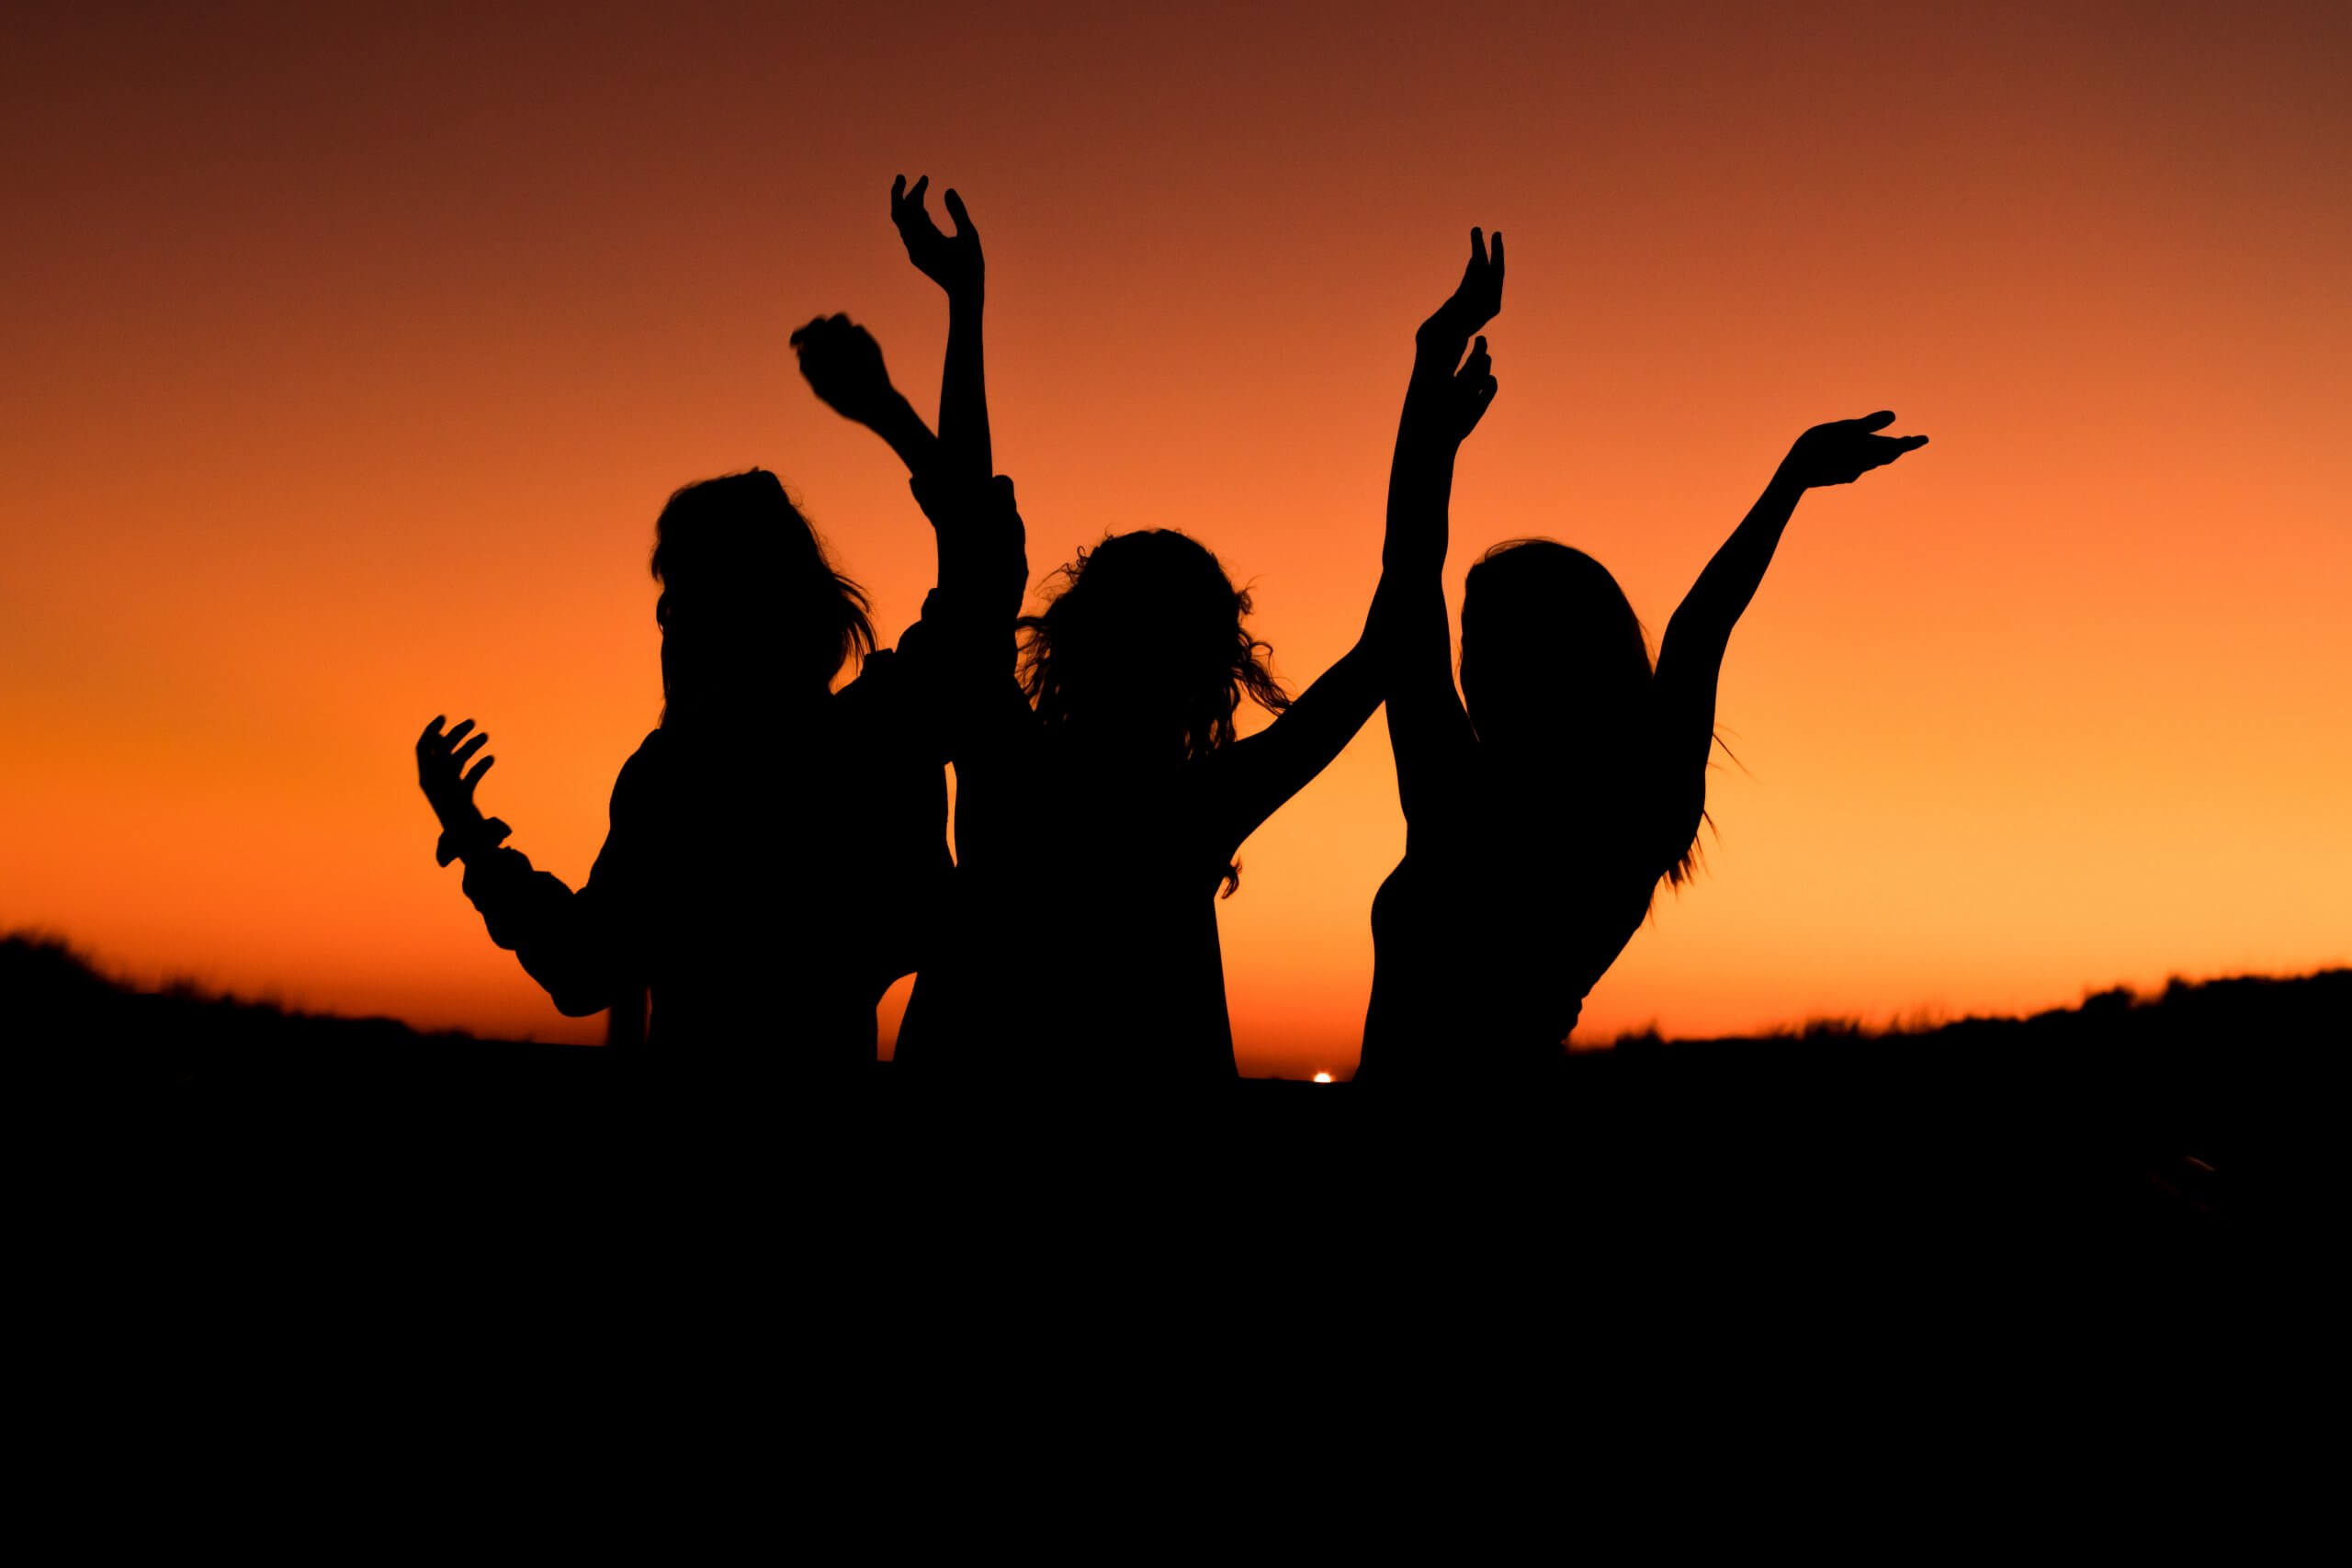 silhouettes of three women dancing at night with orange sunset sky in background